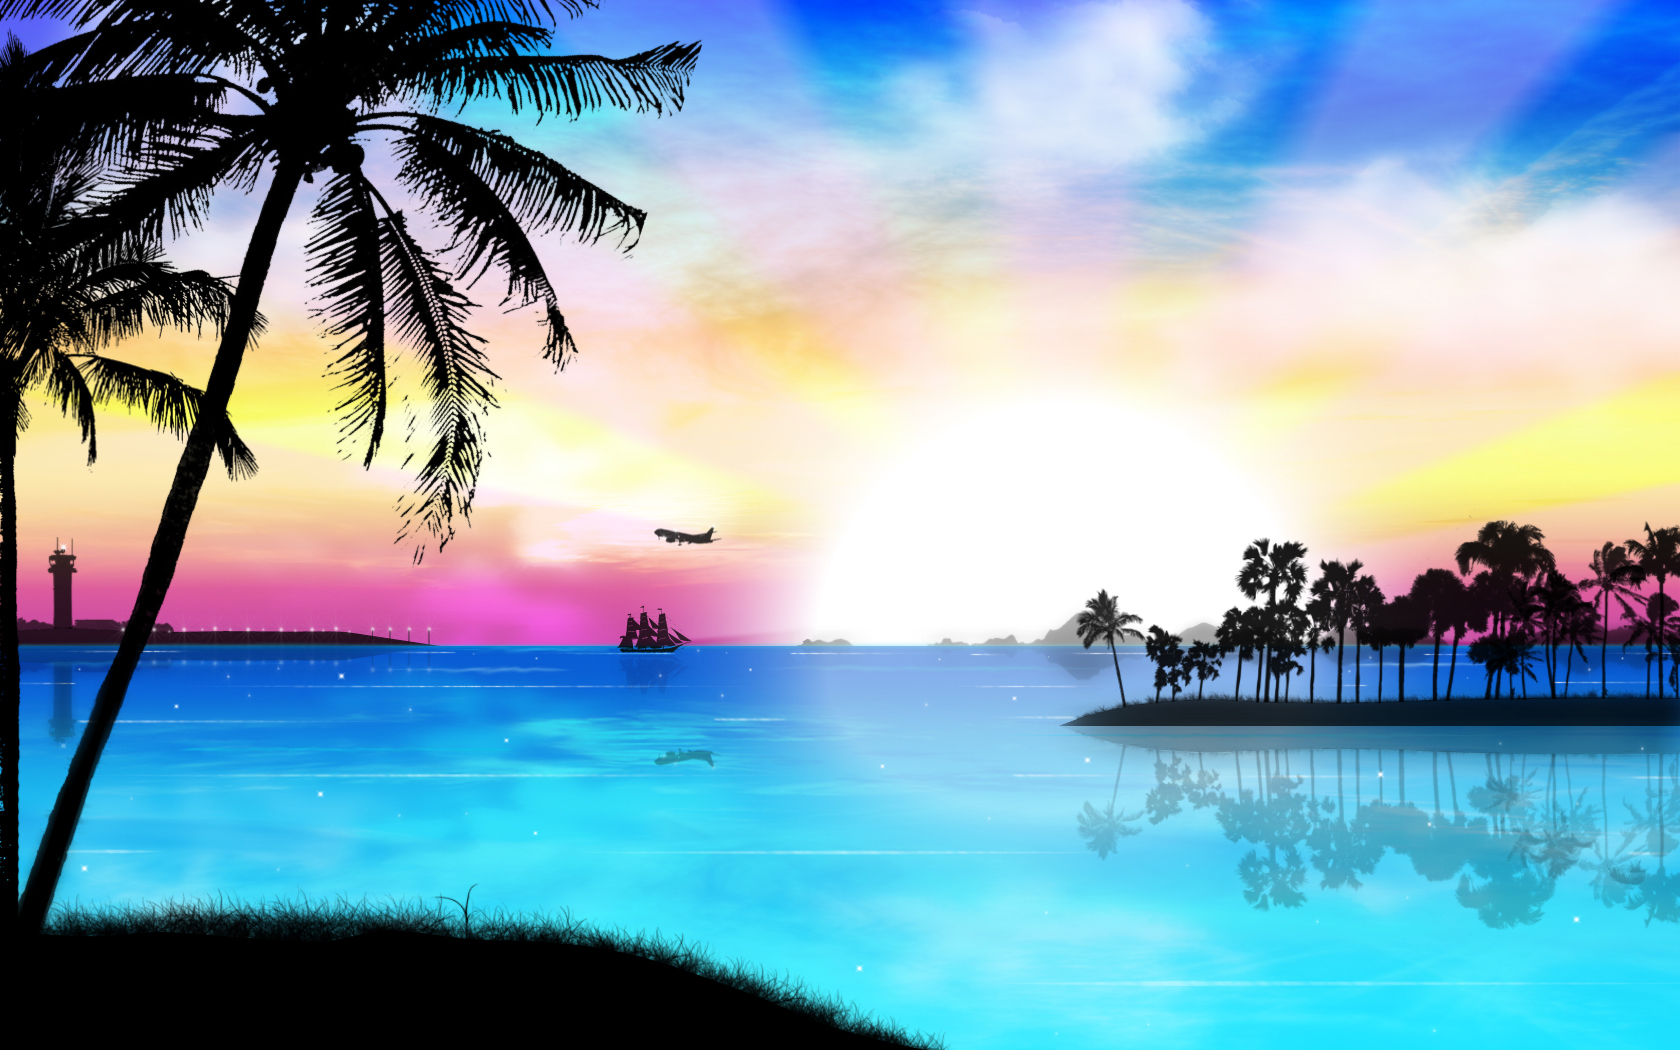 Tropical Beach Screensavers And Wallpaper: Free Tropical Beach Wallpaper